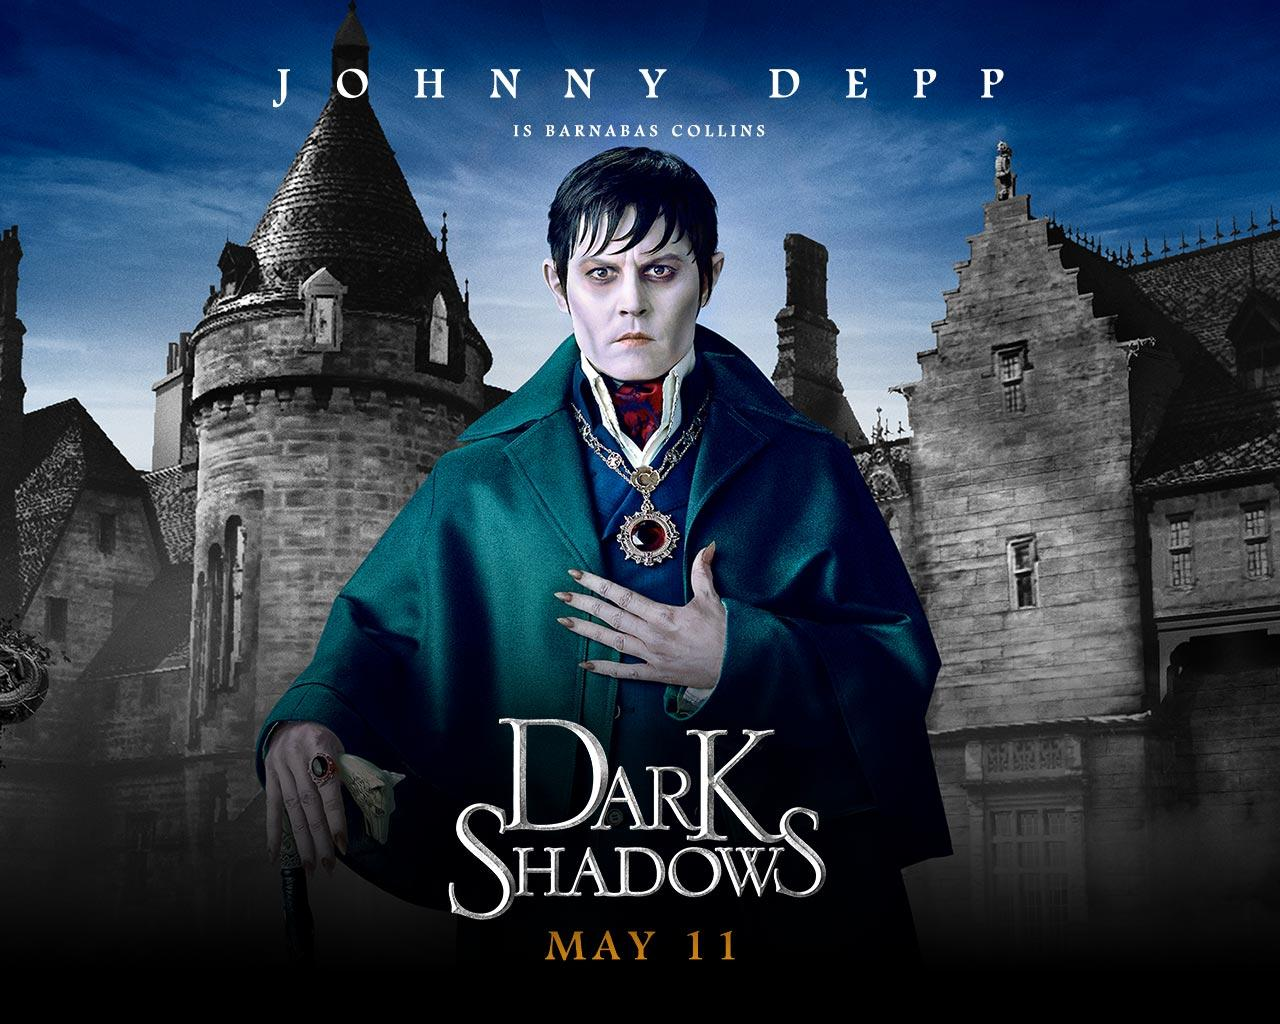 Dark Shadows - Johnny Depp Barnabas Collins